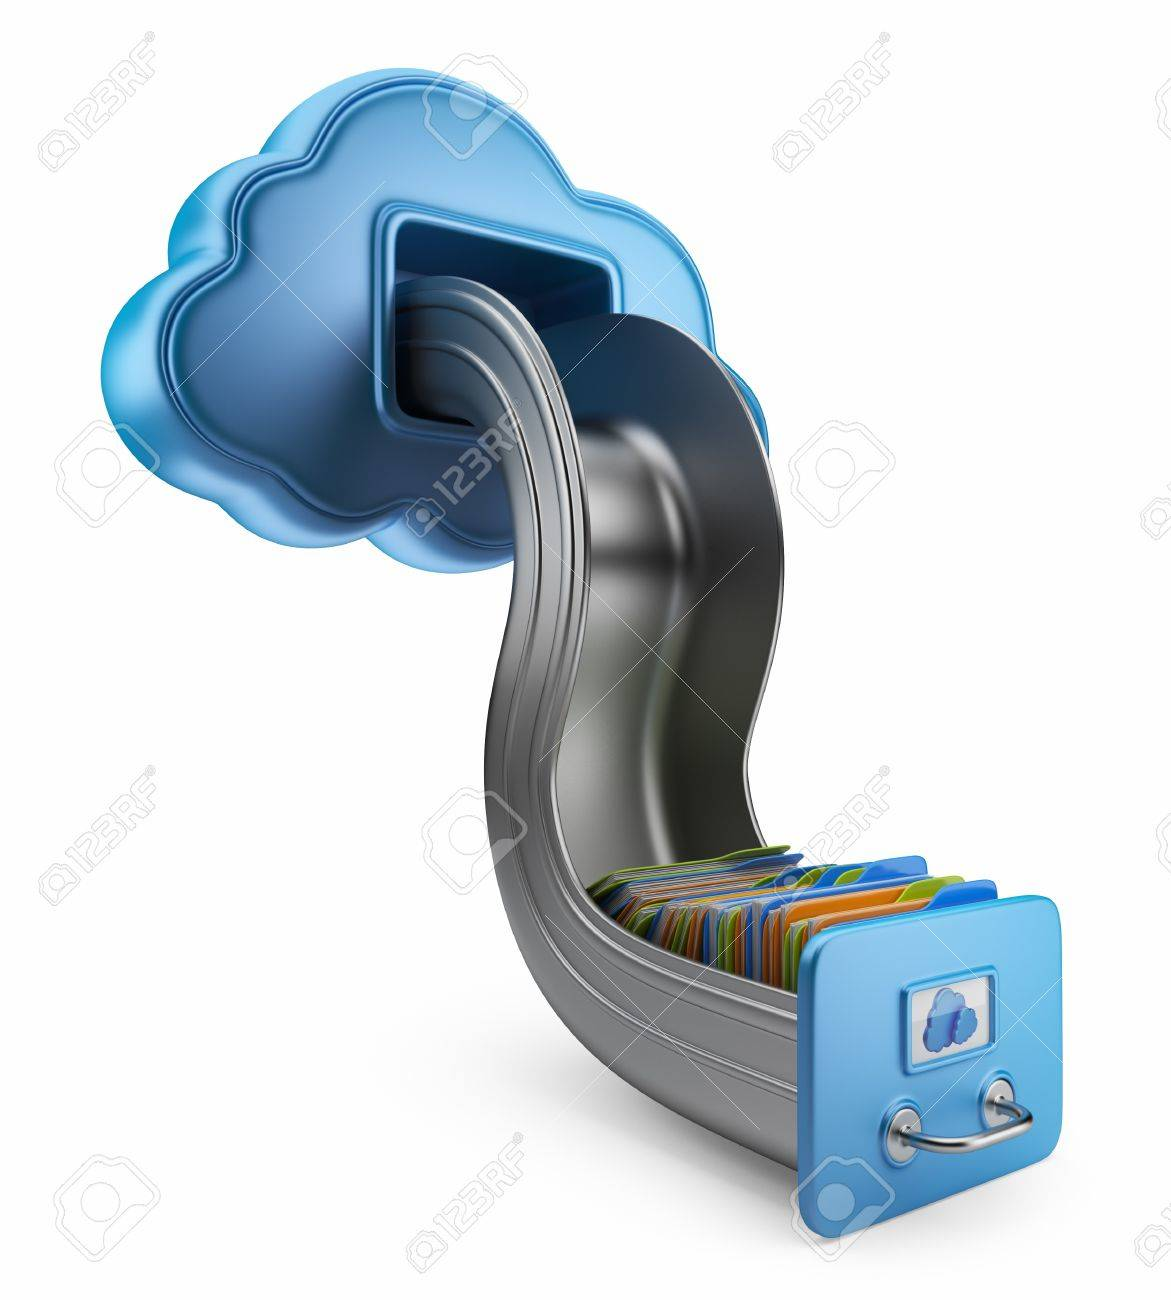 File storage in cloud 3D computer icon isolated on white - 14846788